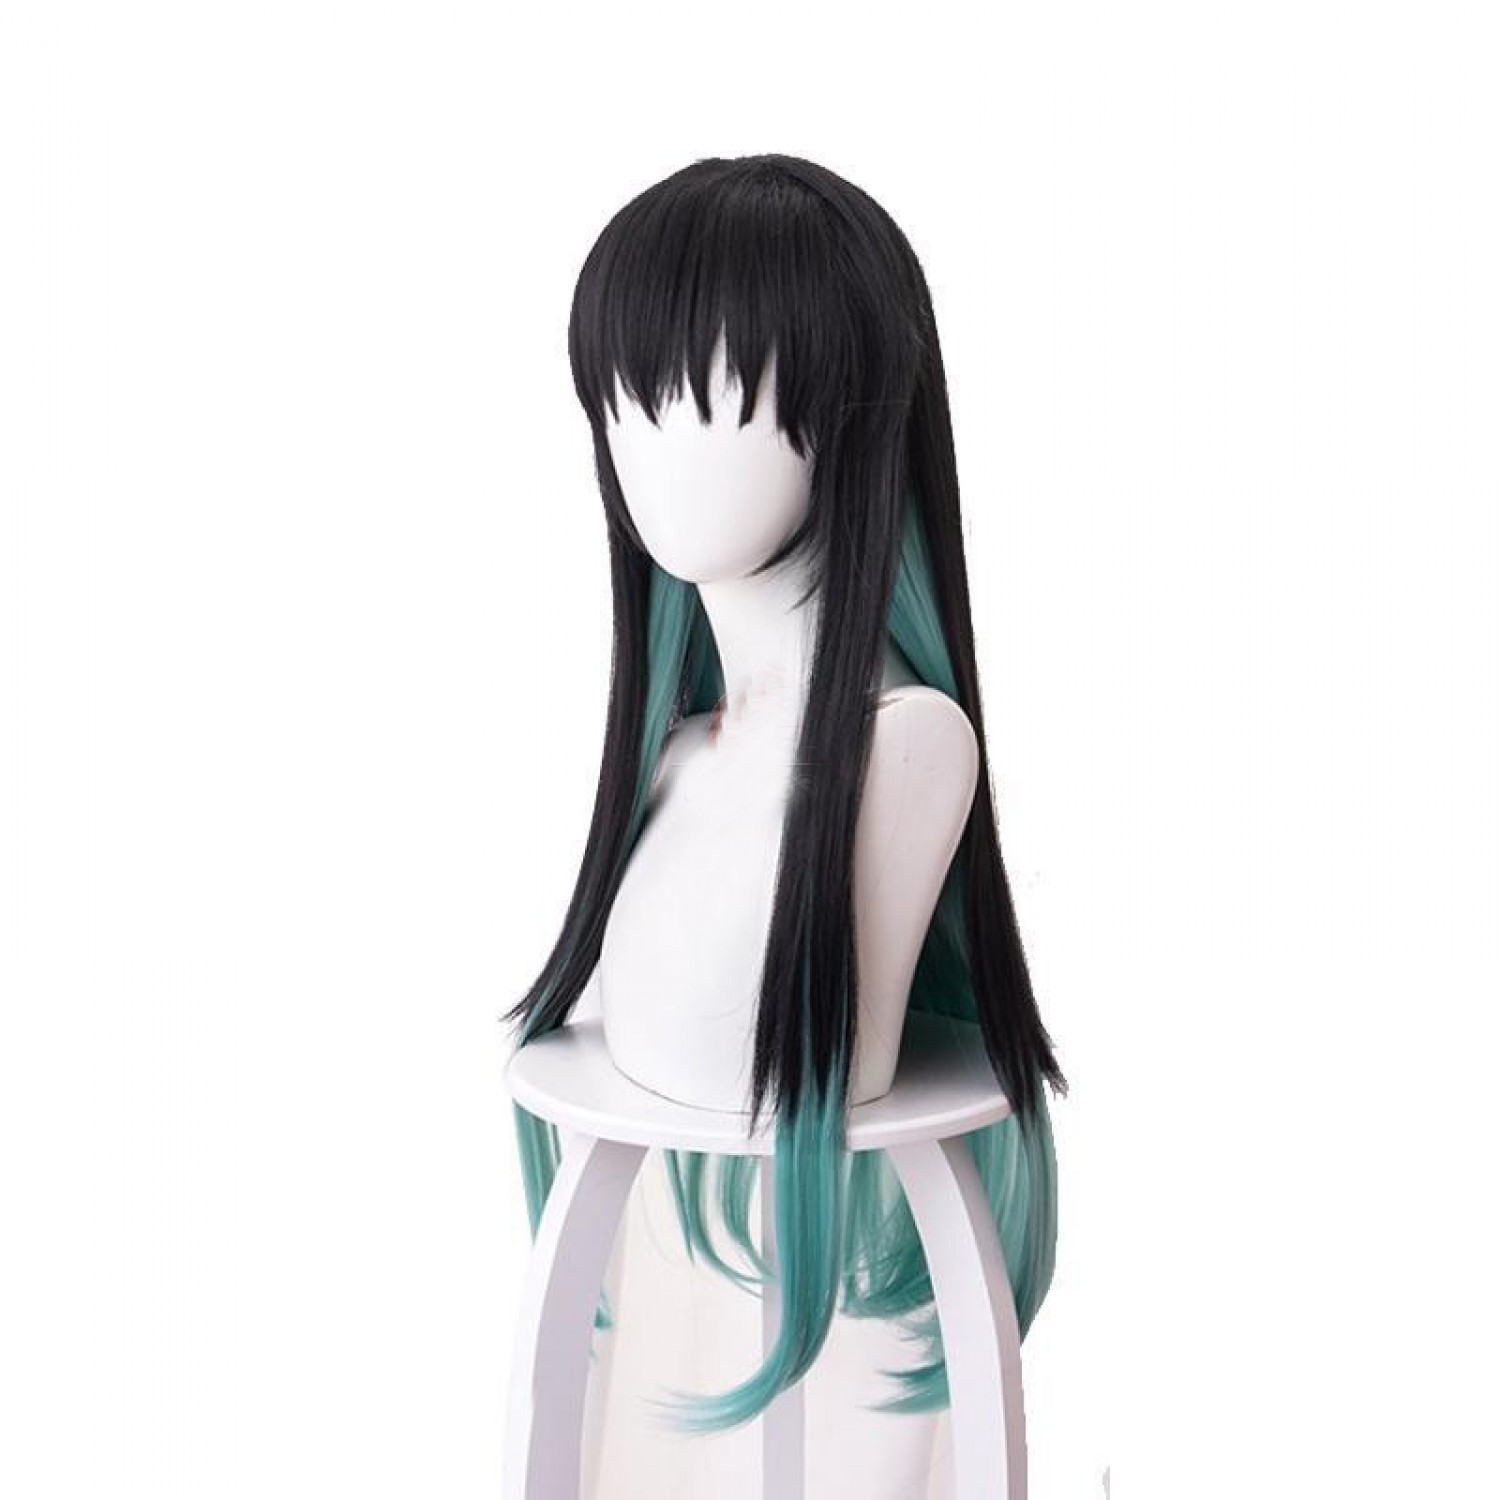 Demon Slayer Antarcticite Cosplay Wig Green Mixed Black ...